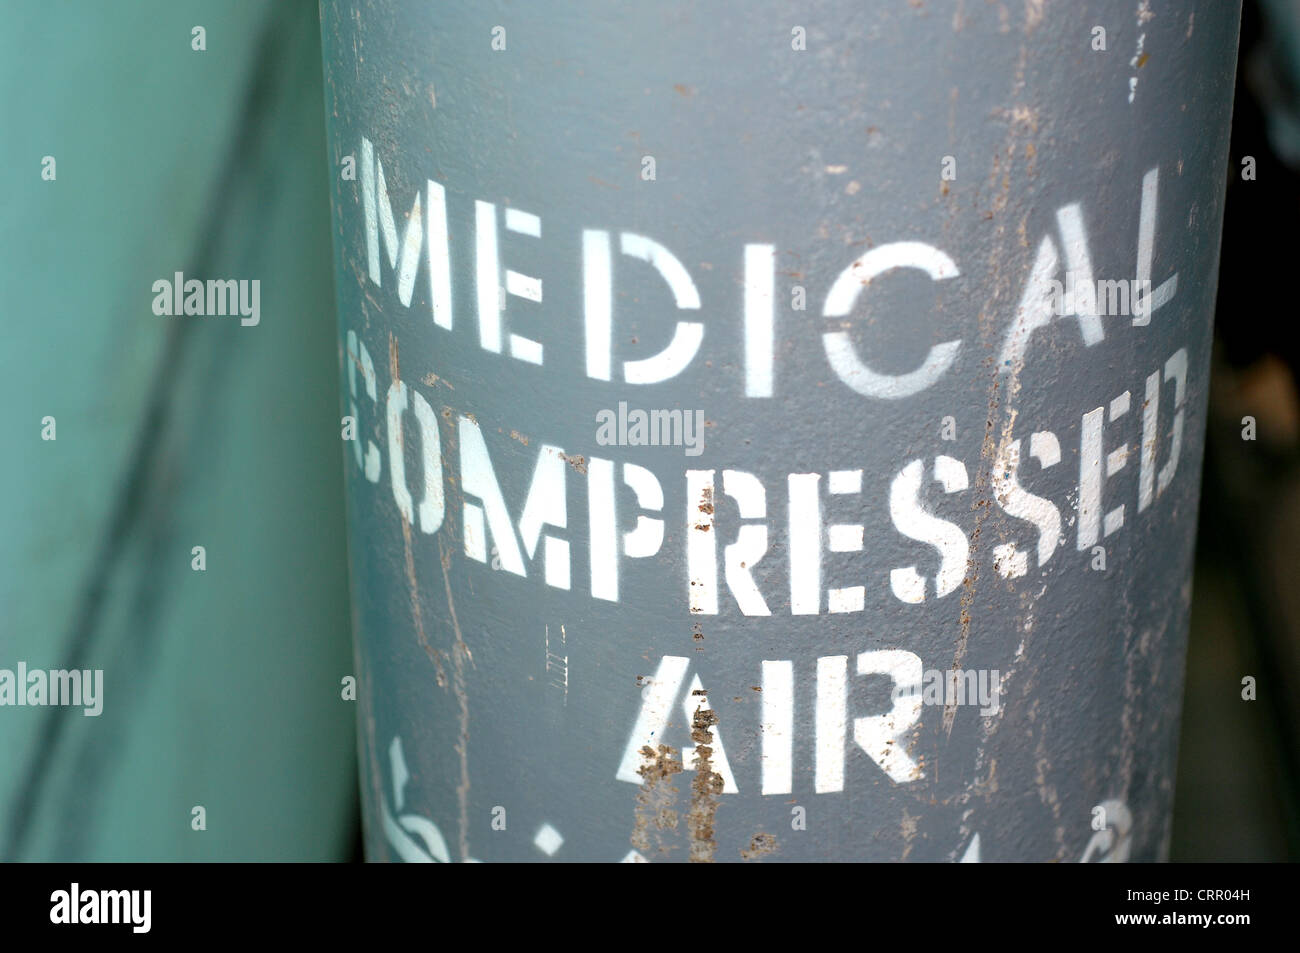 Medical compressed air (Oxygen). - Stock Image